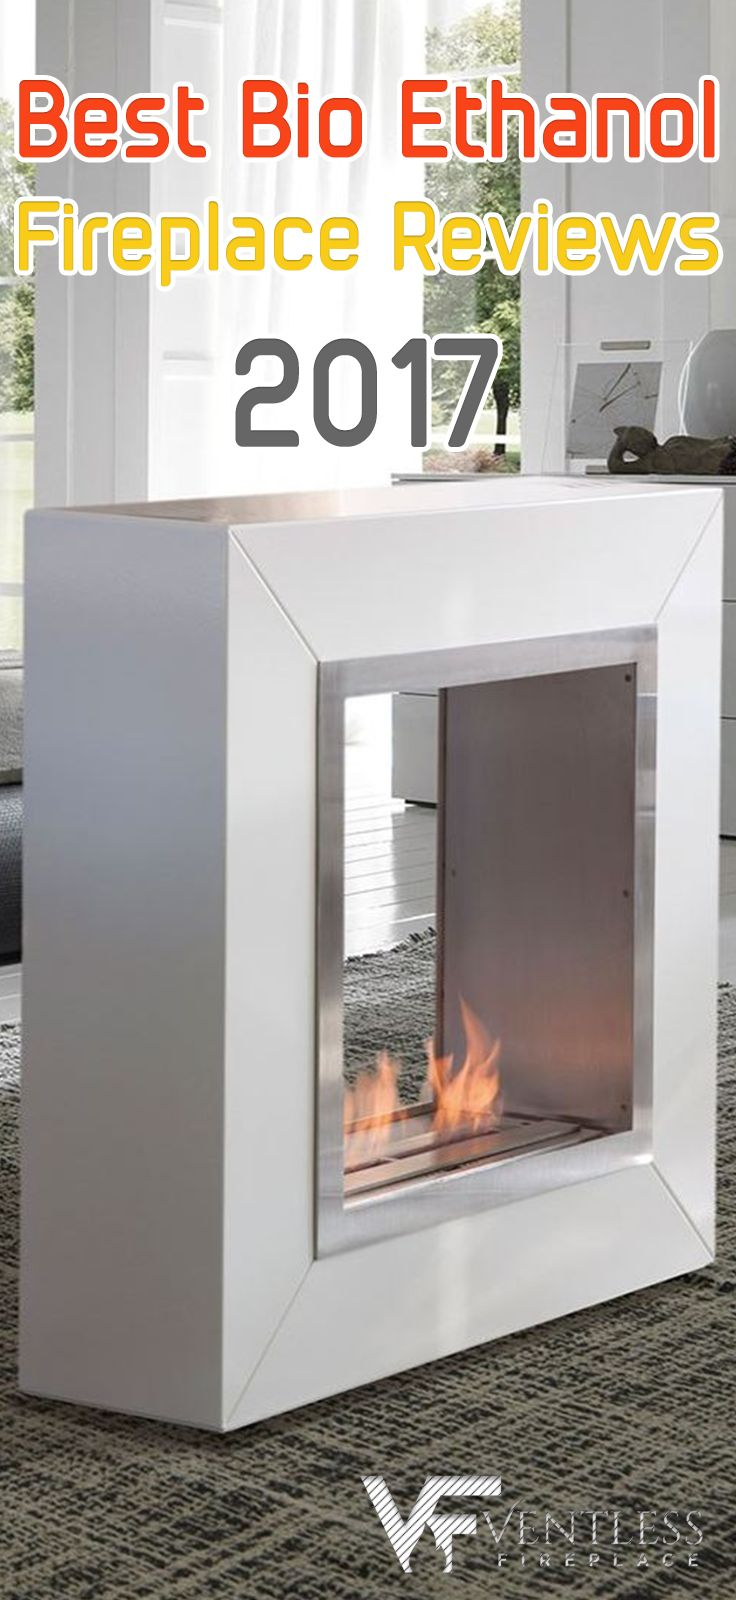 Cheminée Bioéthanol Bestbio 7 Best Fireplace Images On Pinterest Fire Places Fireplace